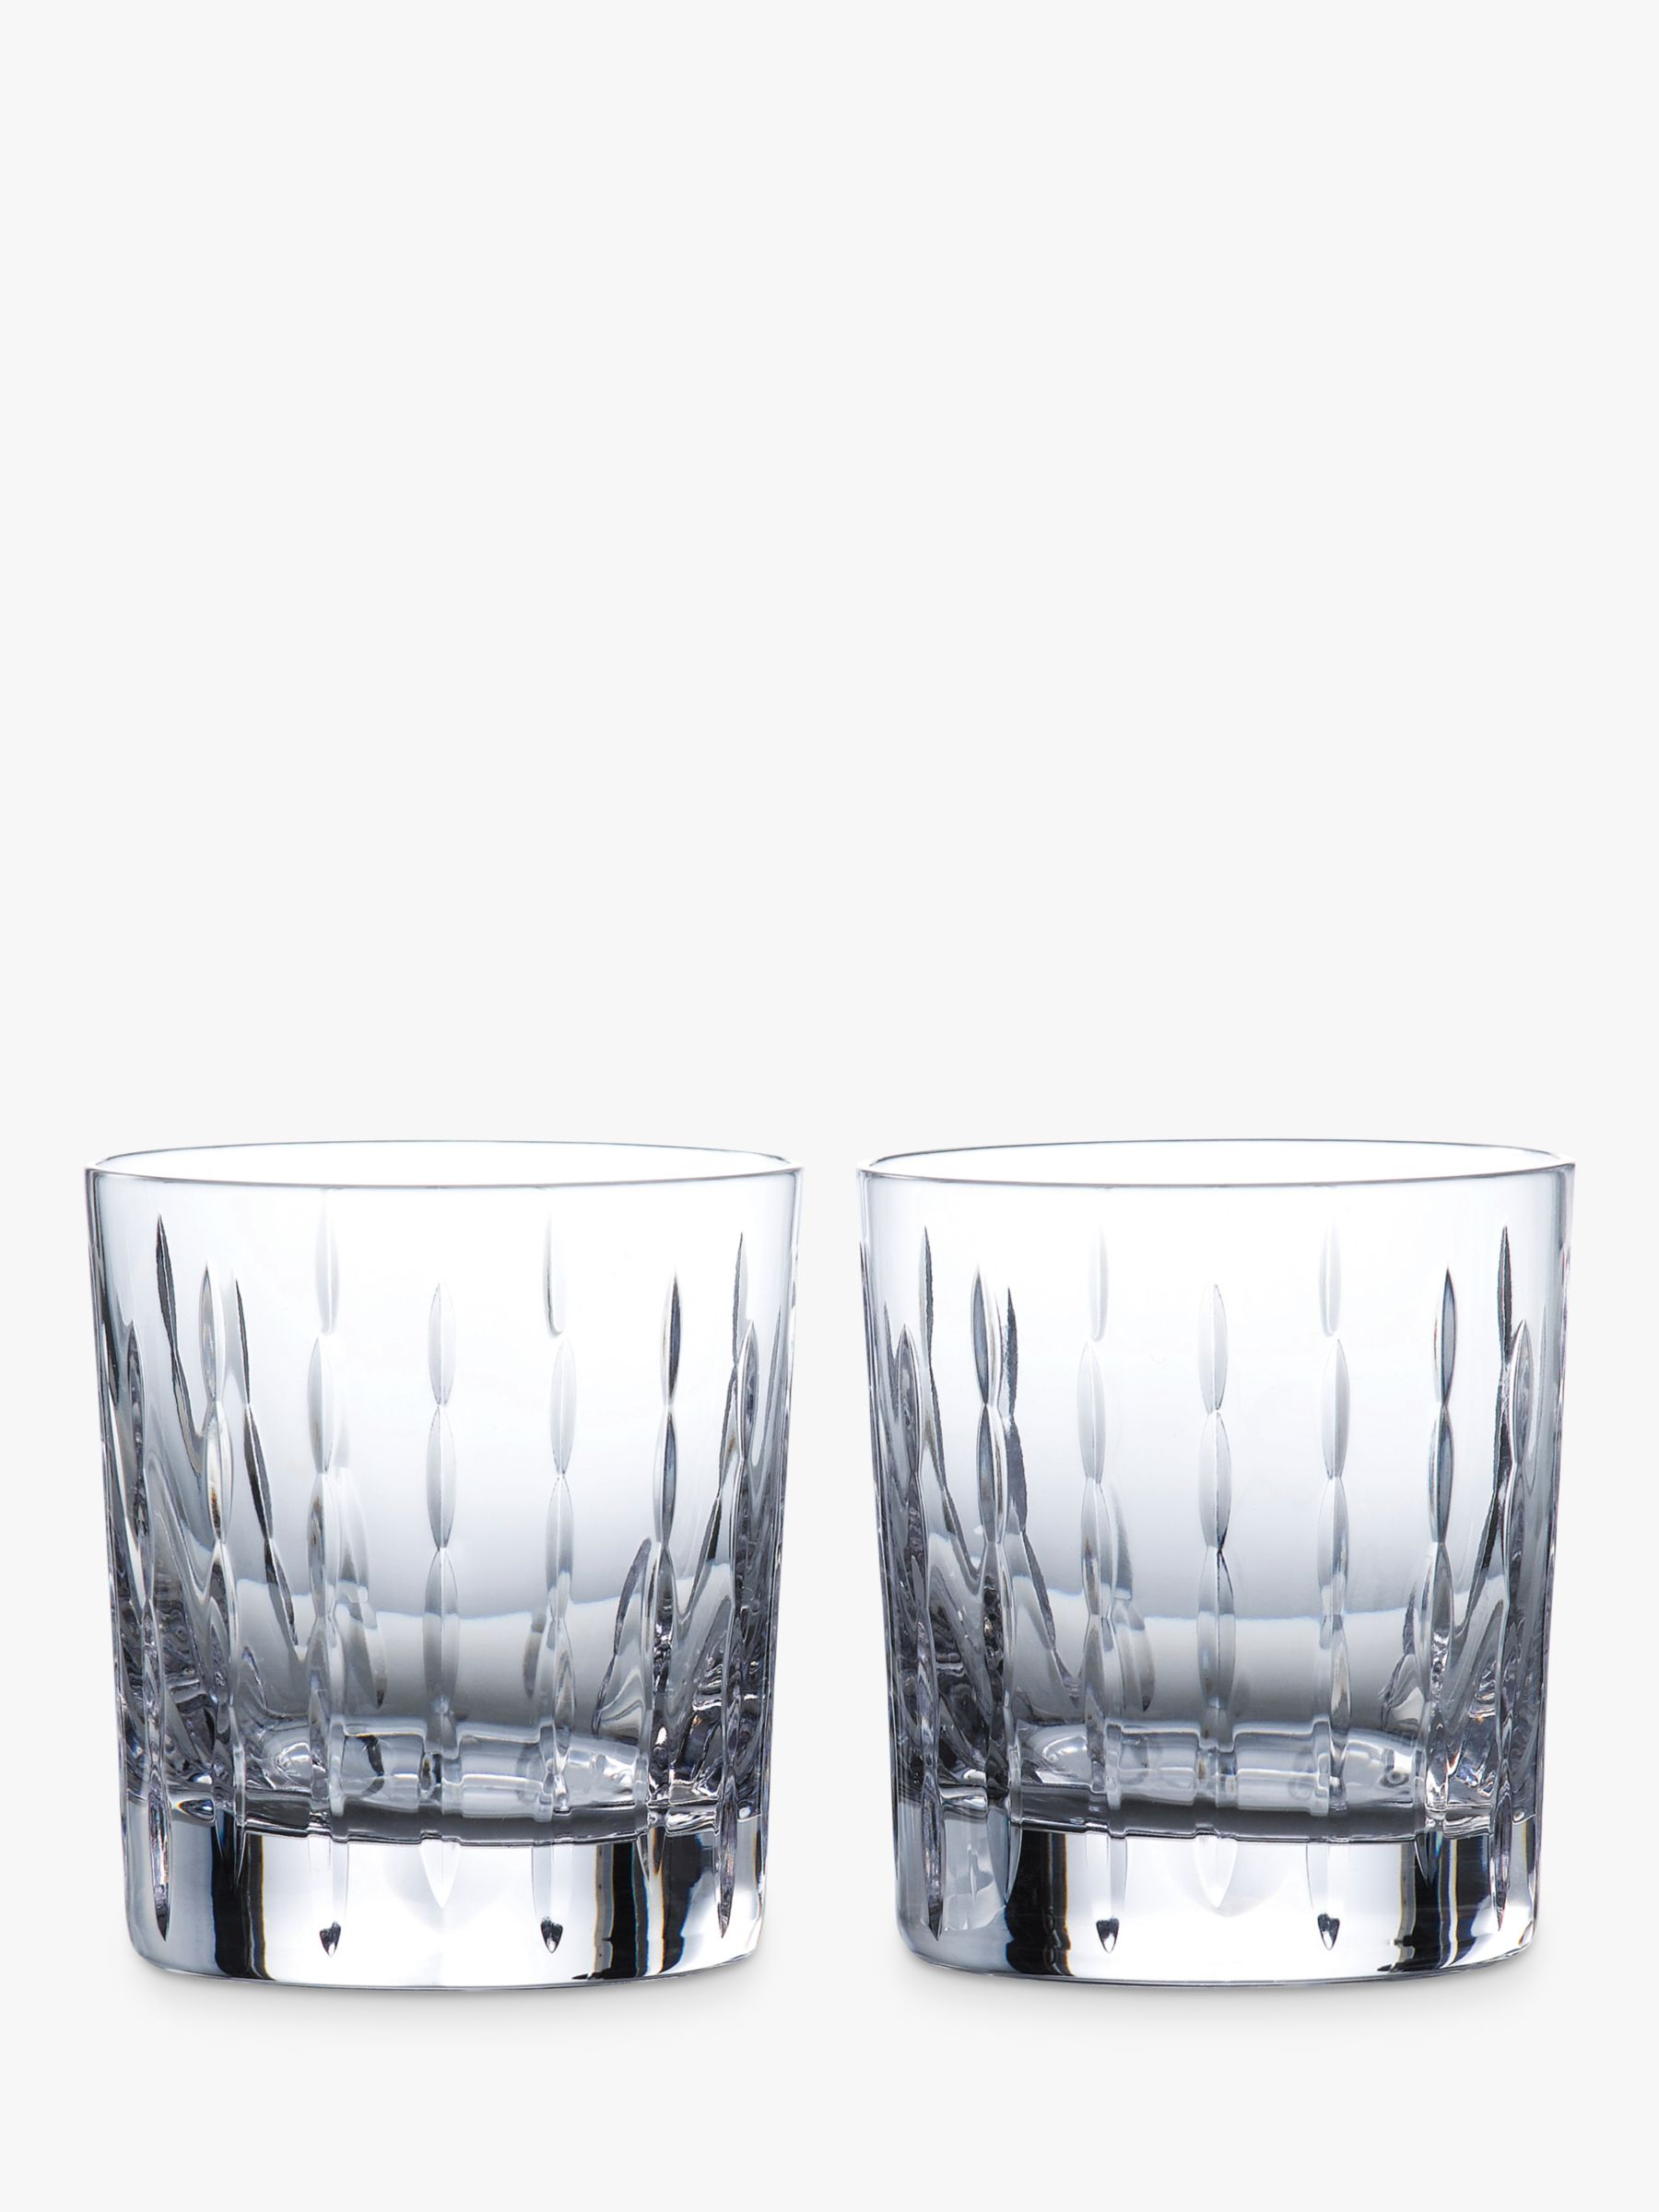 Royal Doulton Royal Doulton R&D Collection Neptune Crystal Cut Glass Tumblers, 290ml, Set of 2